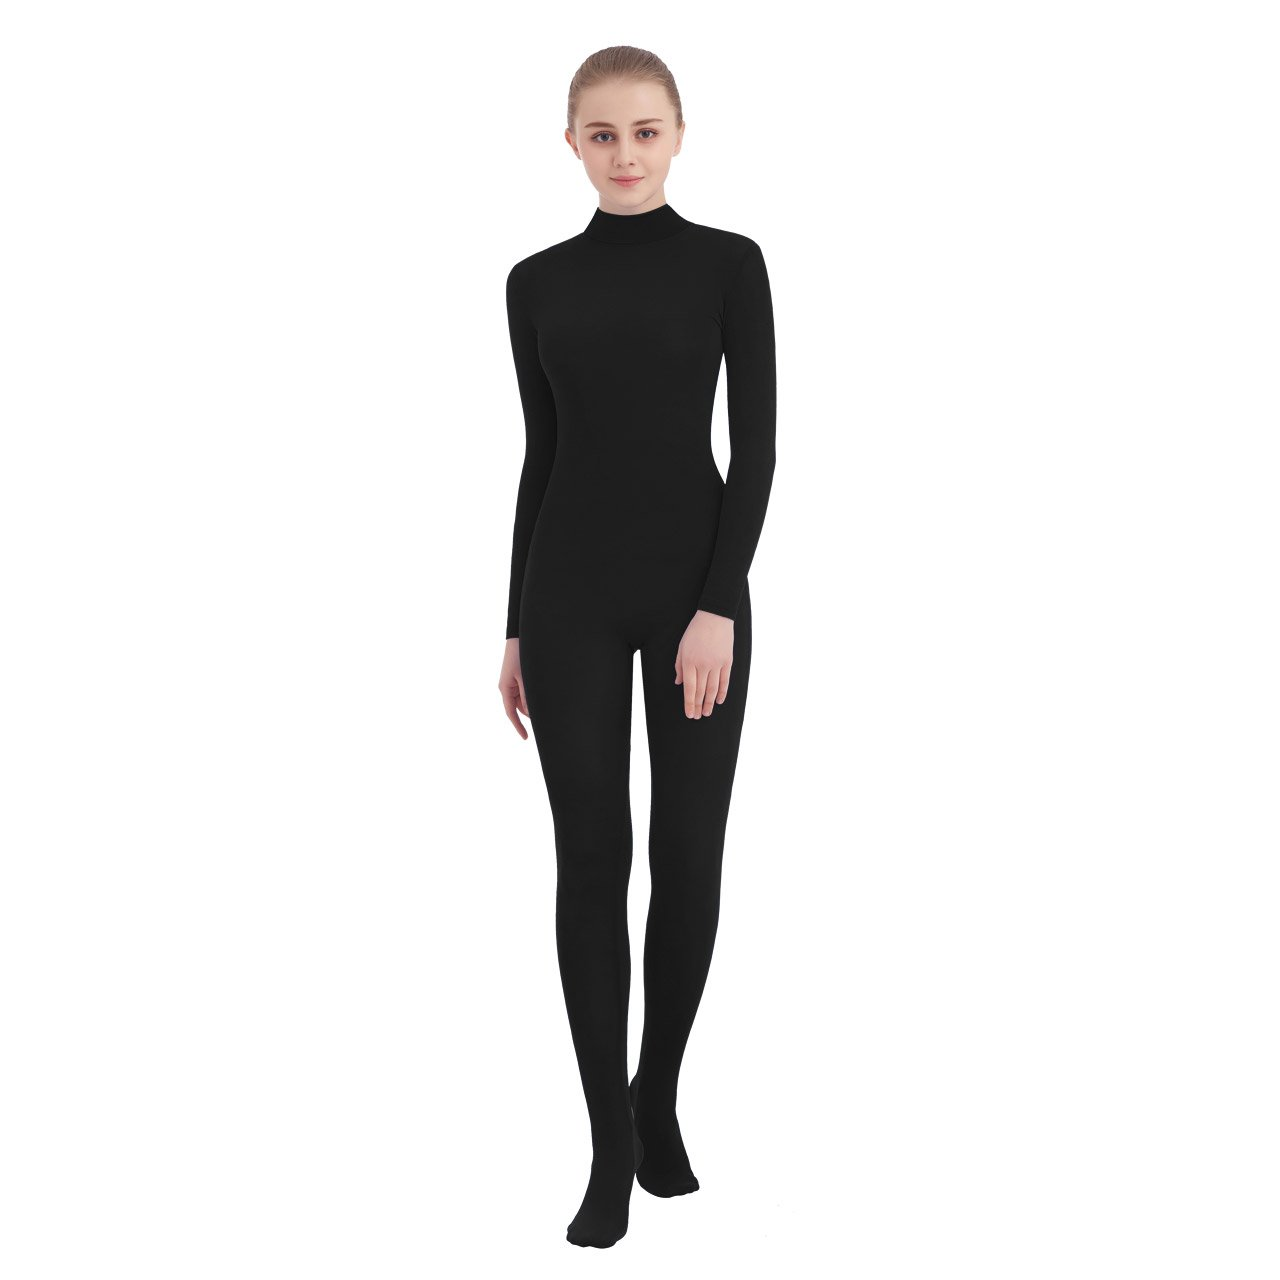 SUPRNOWA Unisex Turtleneck Footed/Footless Long Sleeve Lycra Spandex Unitard